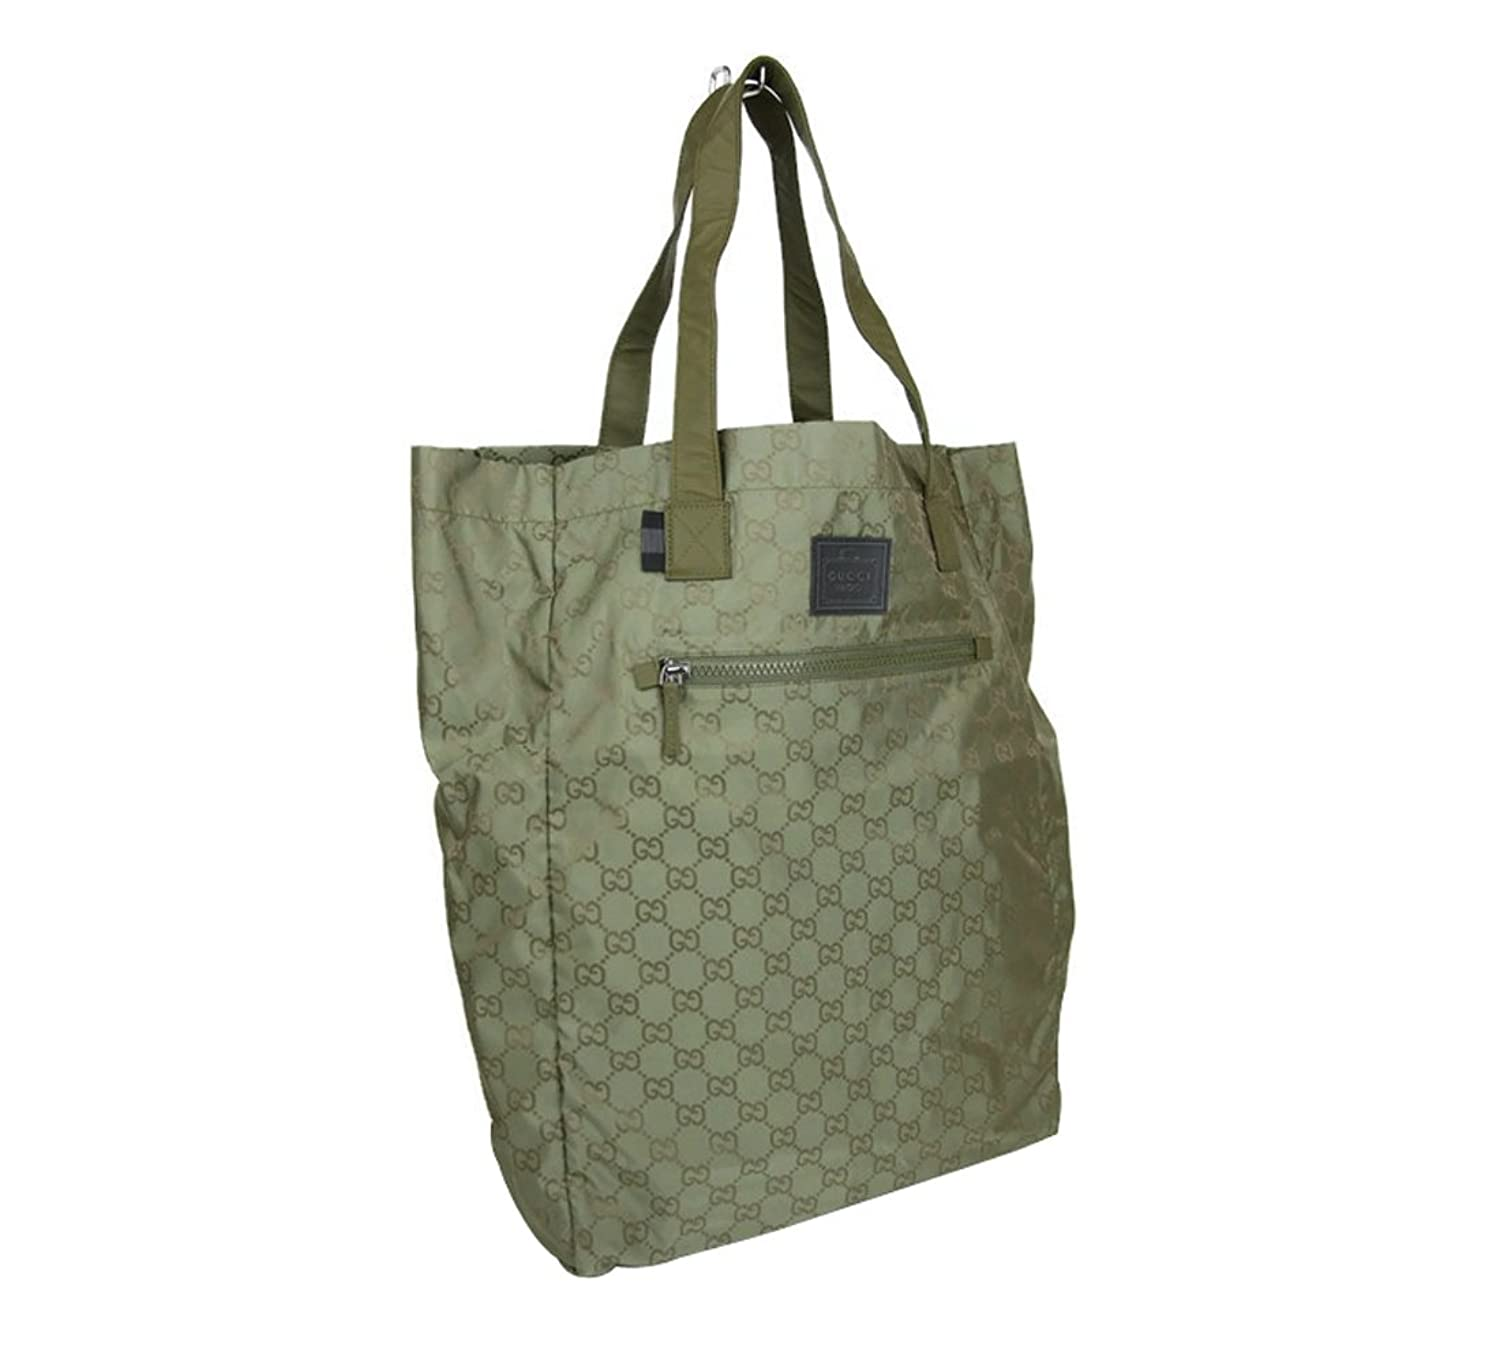 156bc3e5795c7 Amazon.com  Gucci Guccissima Nylon Handbag Viaggio Collection Tote Bag  308877 (Green 3362)  Shoes